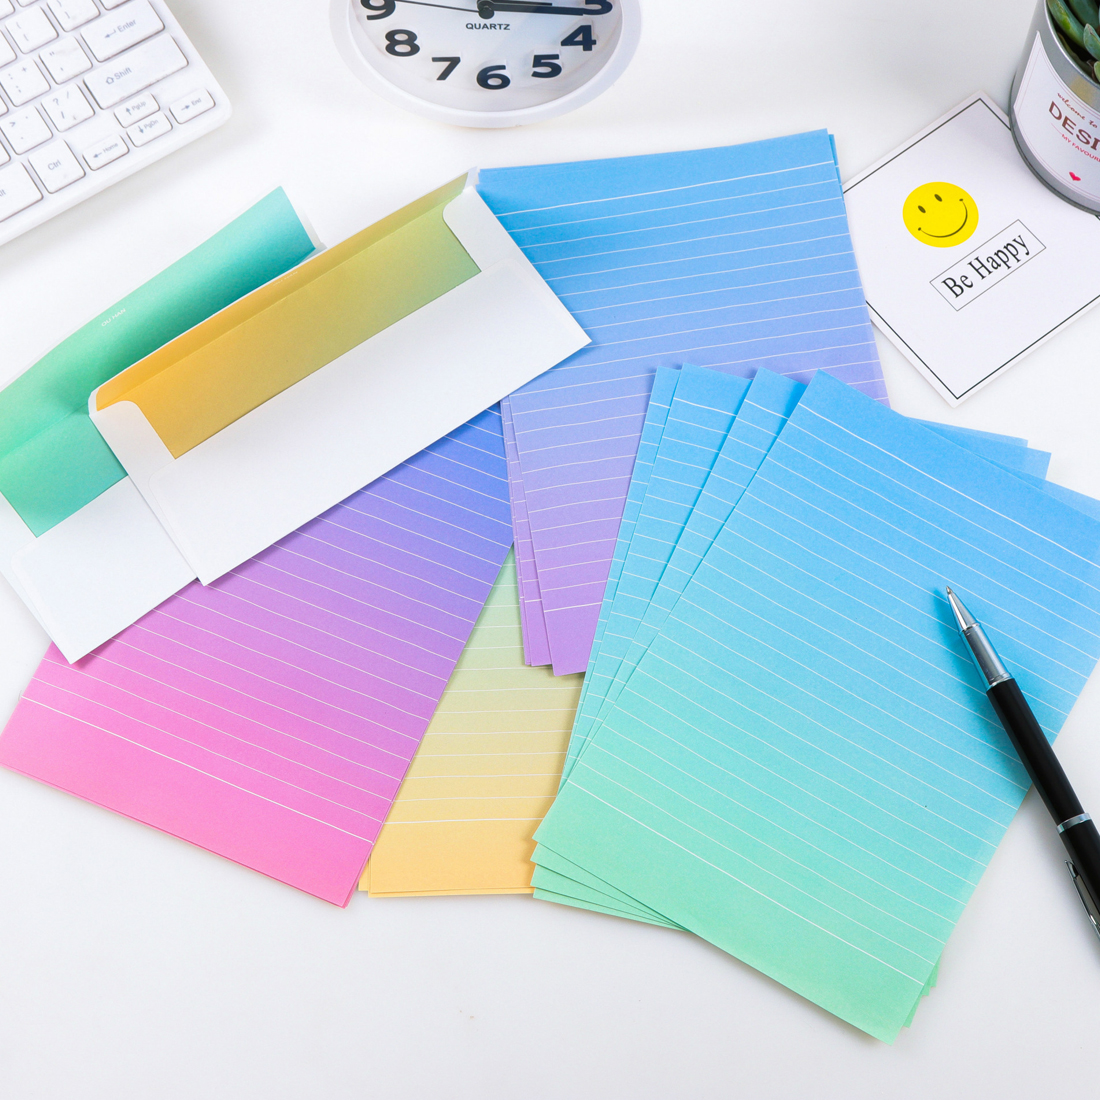 Gradient Envelopes Cute Kawaii Flower Writing Paper Letter Set For Kids Gift School Supplies Student School Supplies